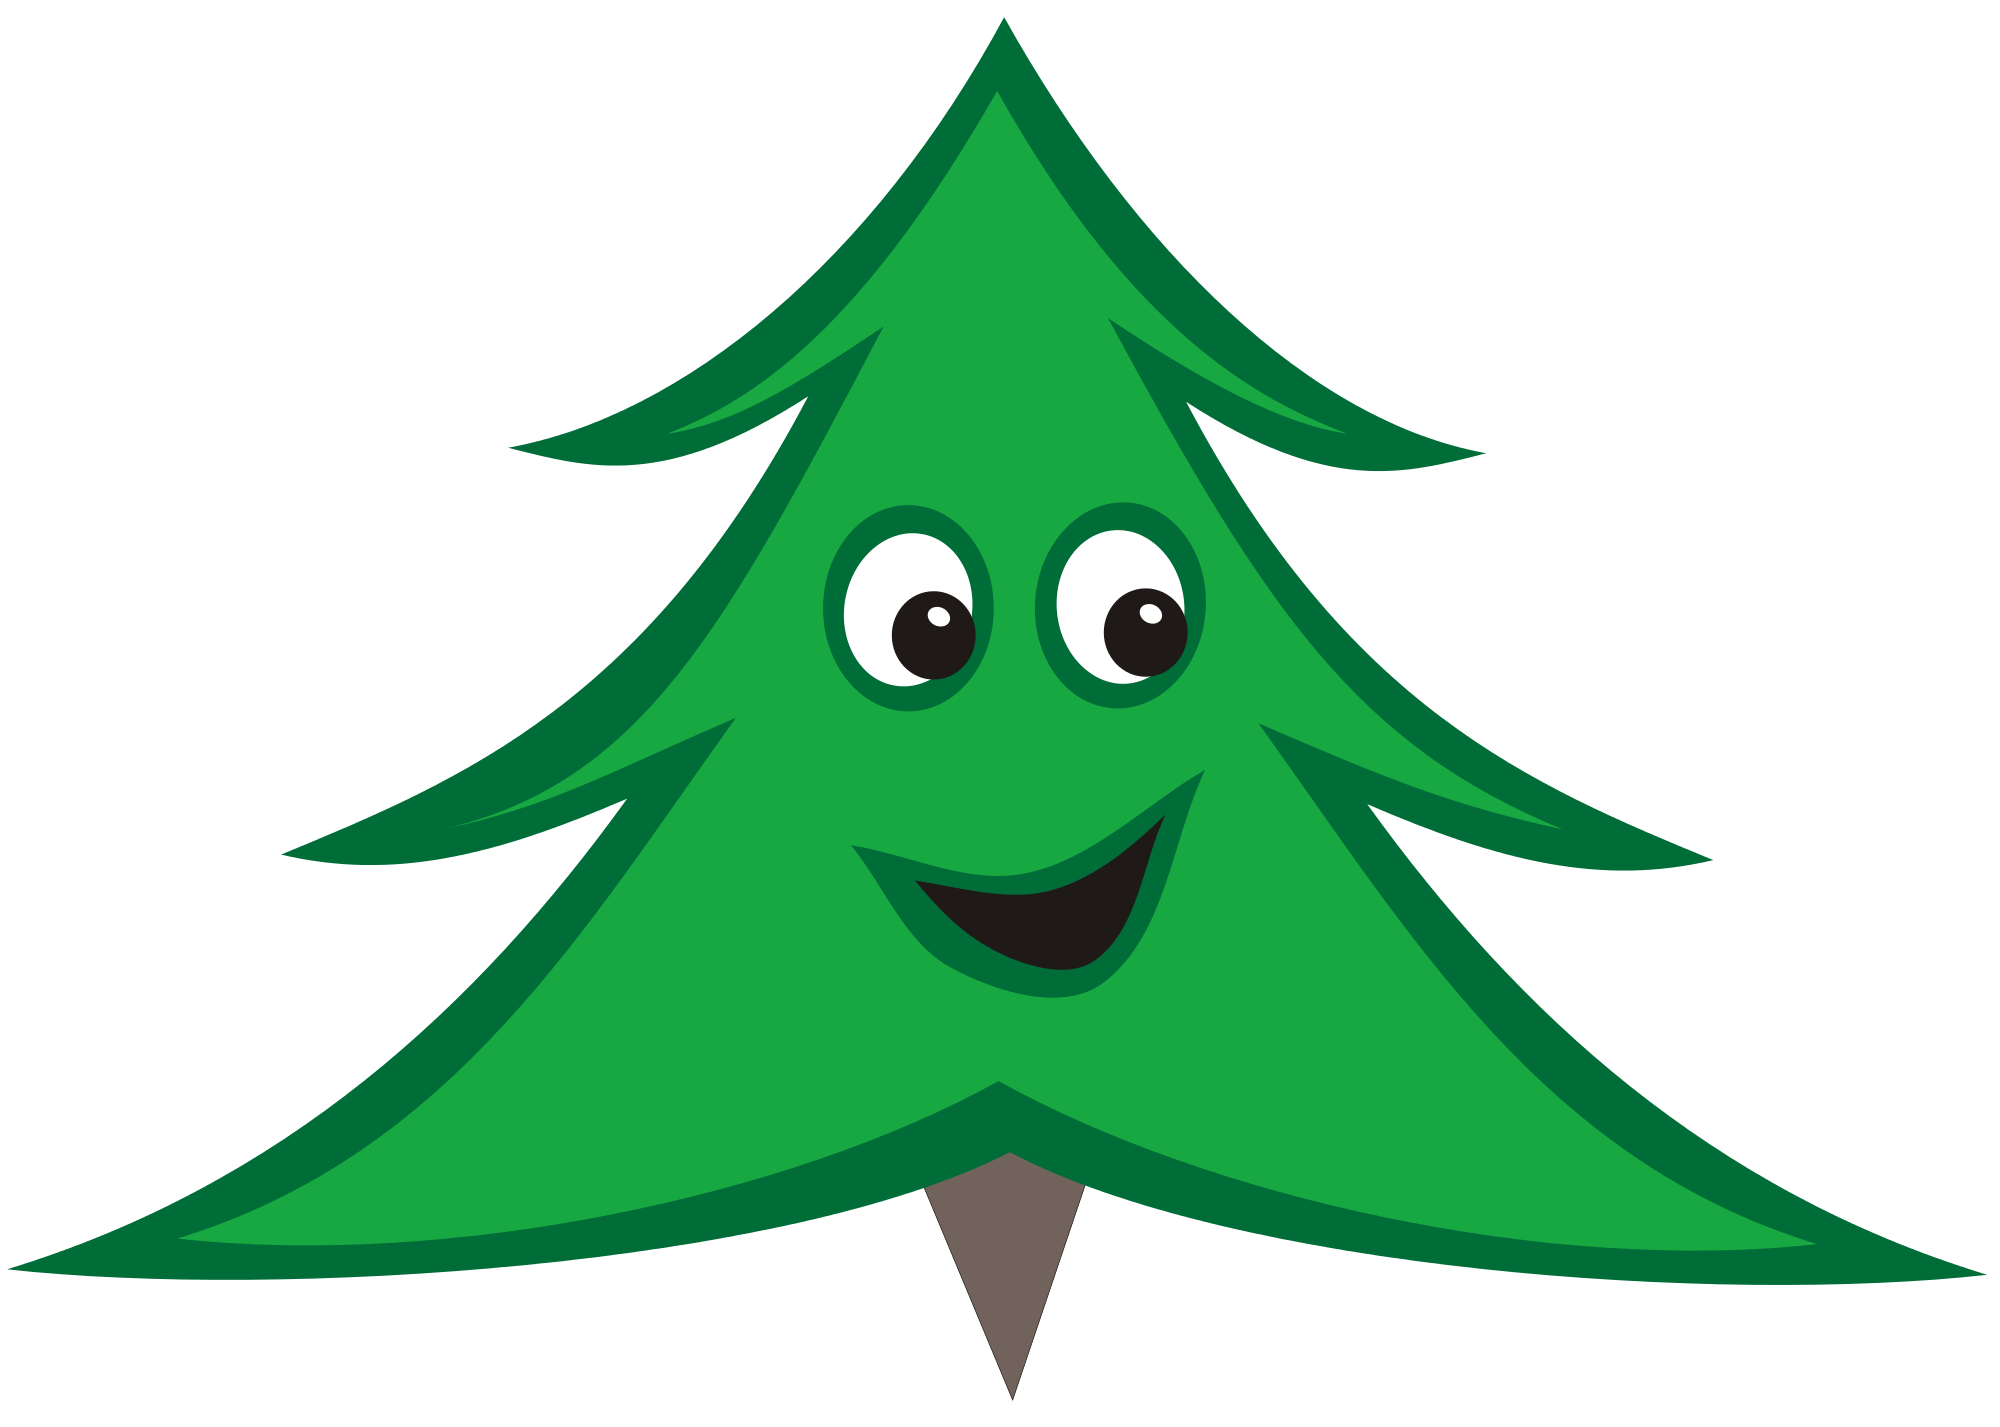 December clipart christmas tree. File smiling svg wikimedia